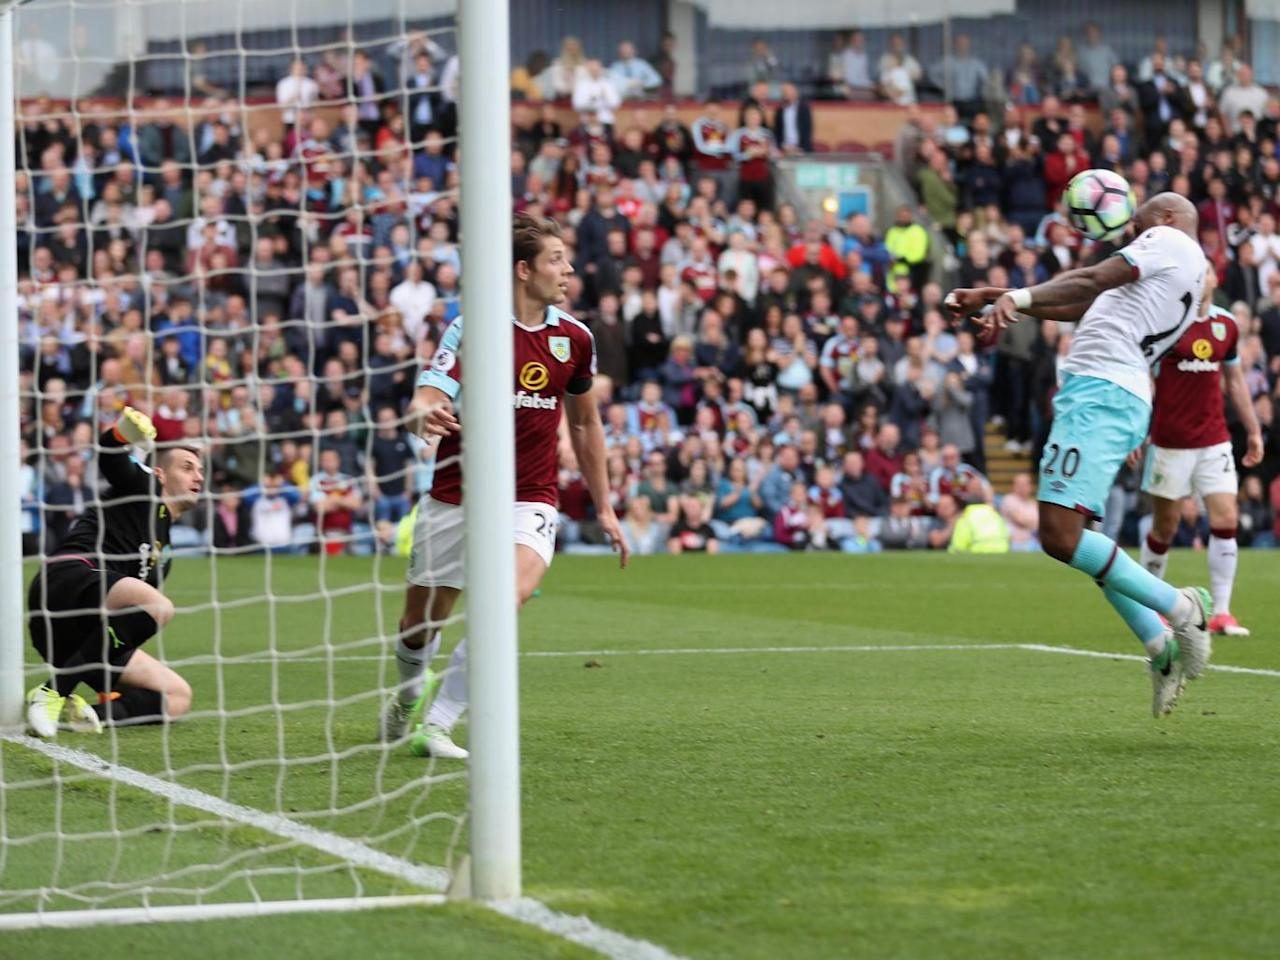 Andre Ayew heads home a late winner as West Ham fight back to finish above Burnley in the Premier League table